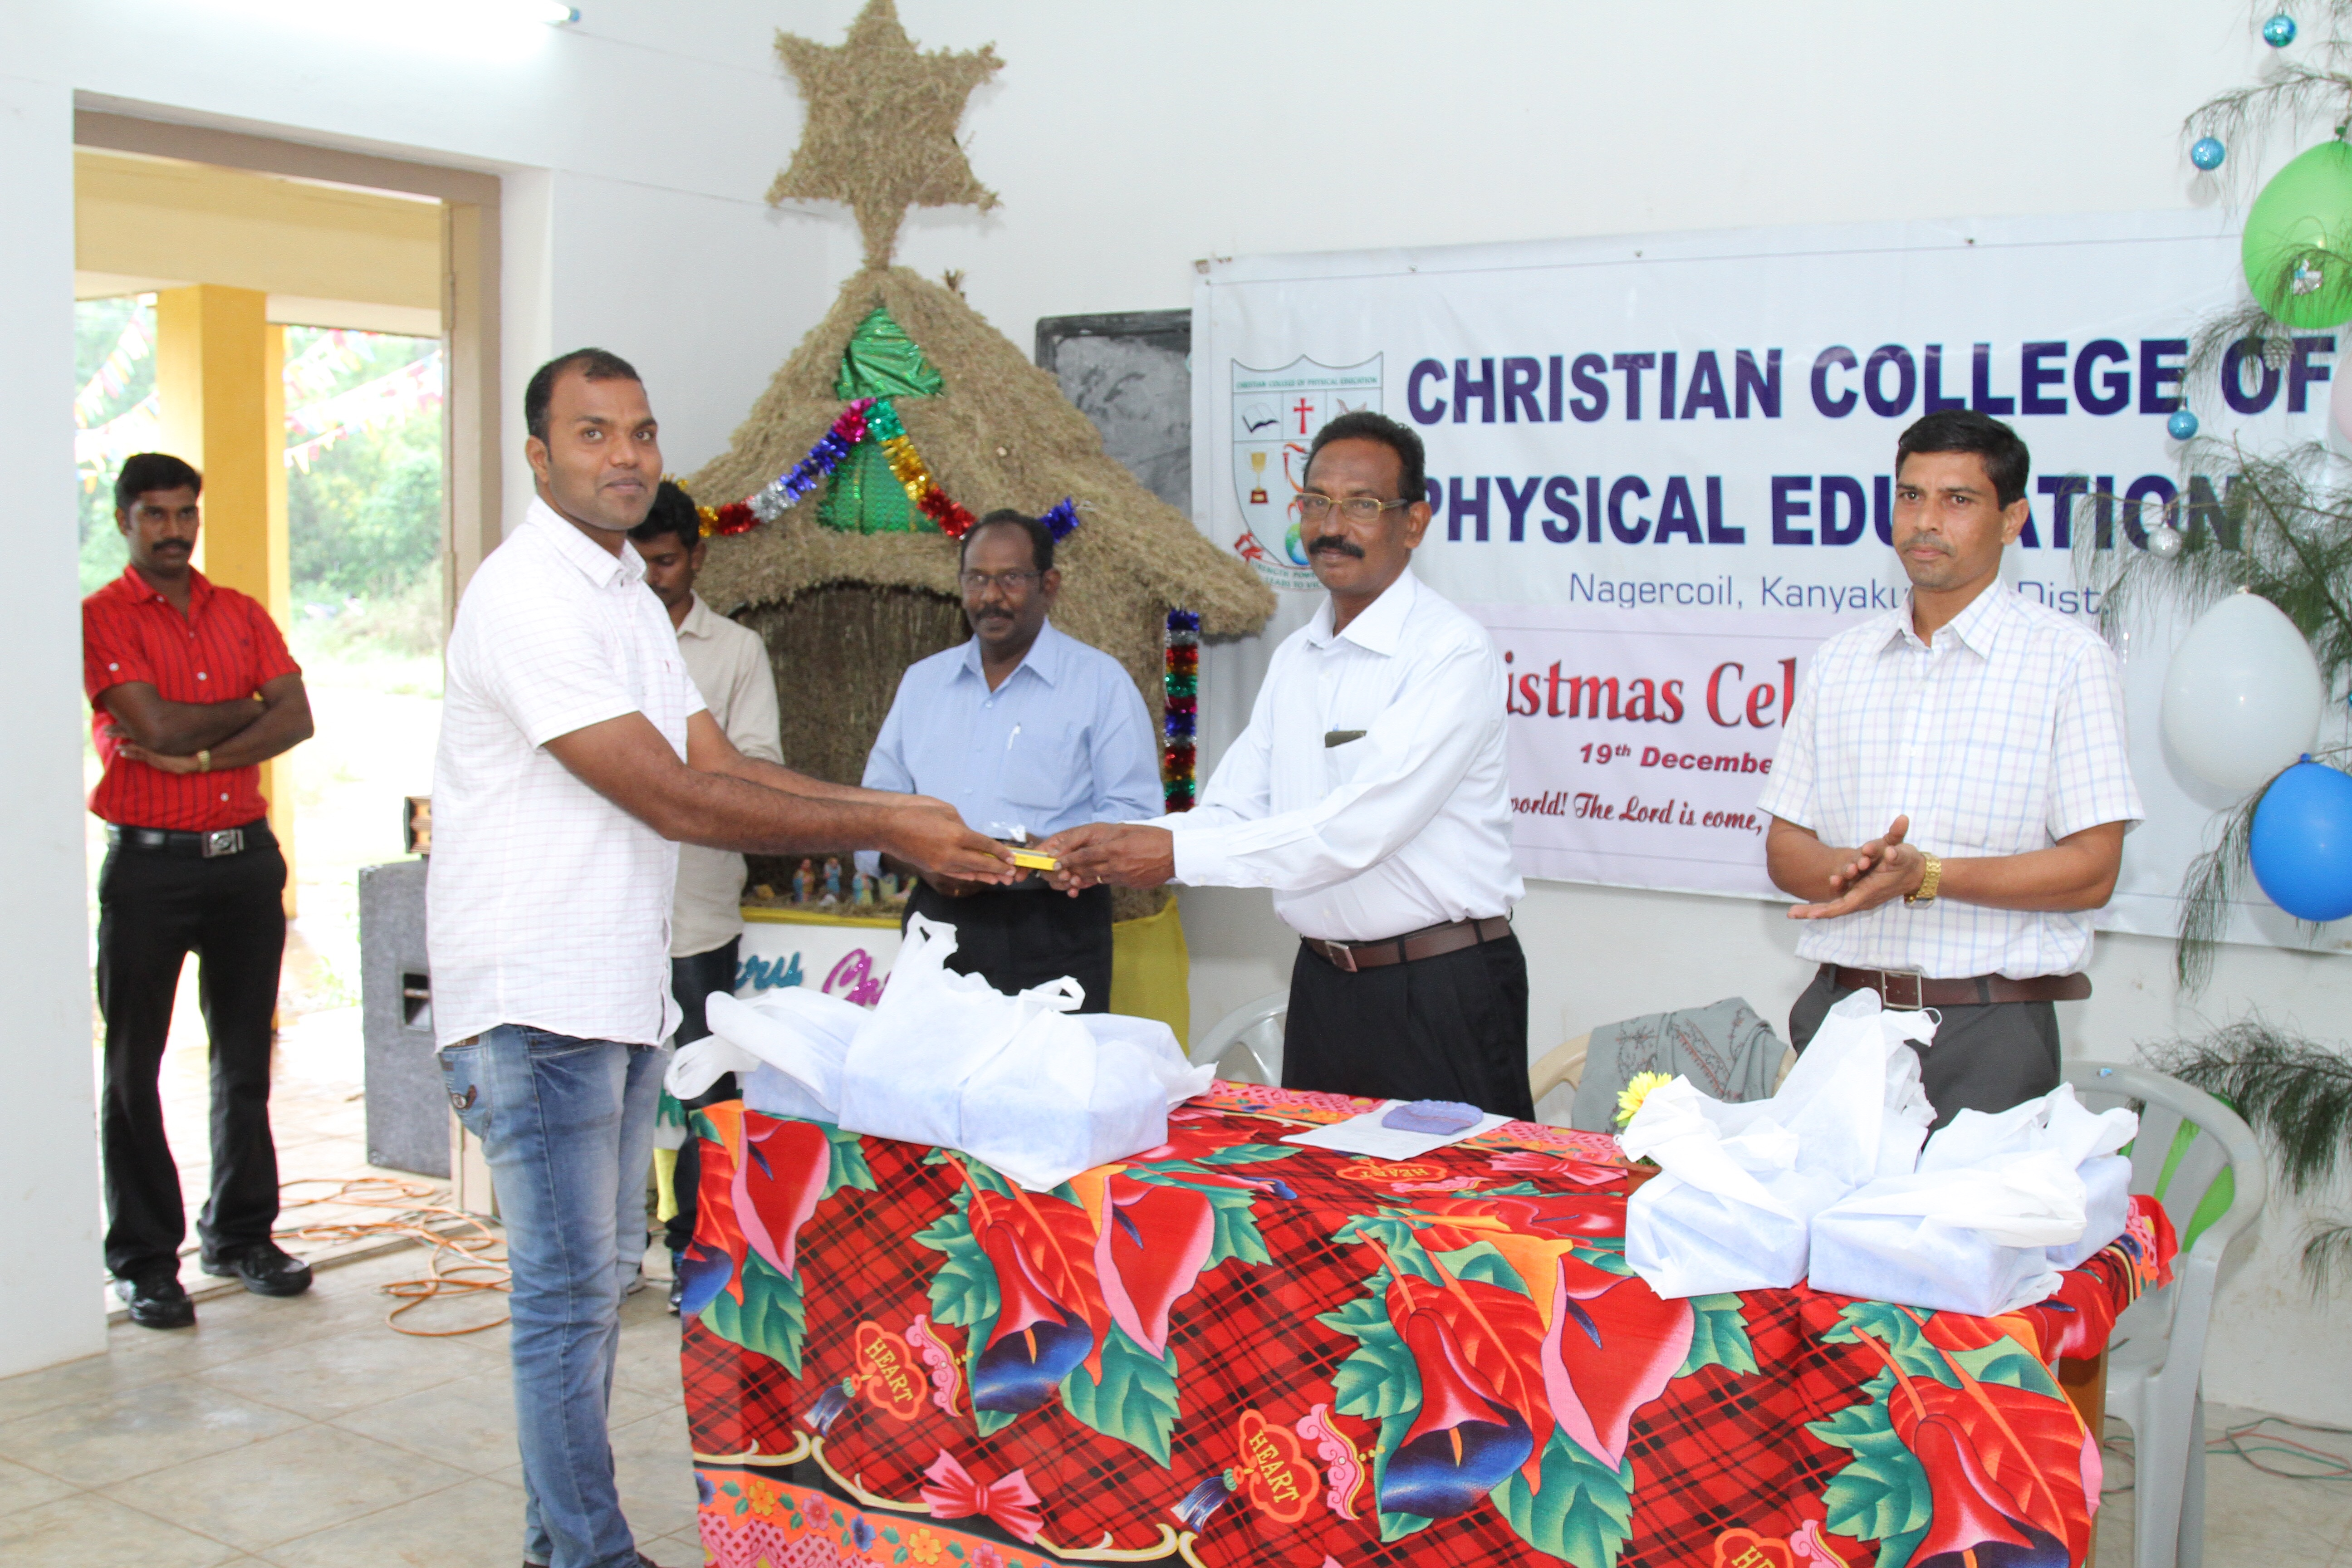 Christian College of Physical Education, Nagercoil